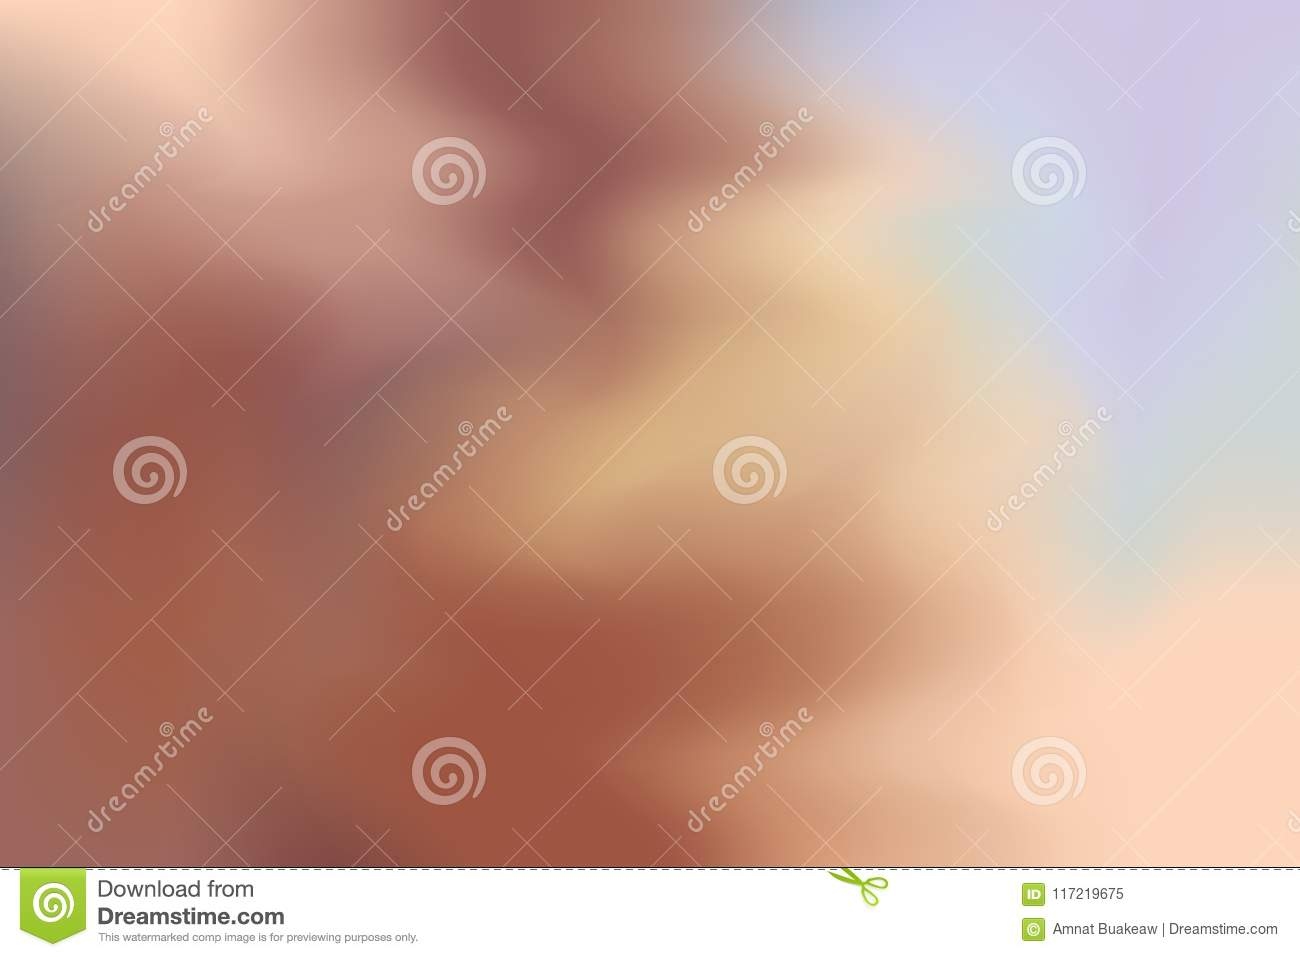 Brown purple soft color mixed background painting art pastel abstract, colorful art wallpaper